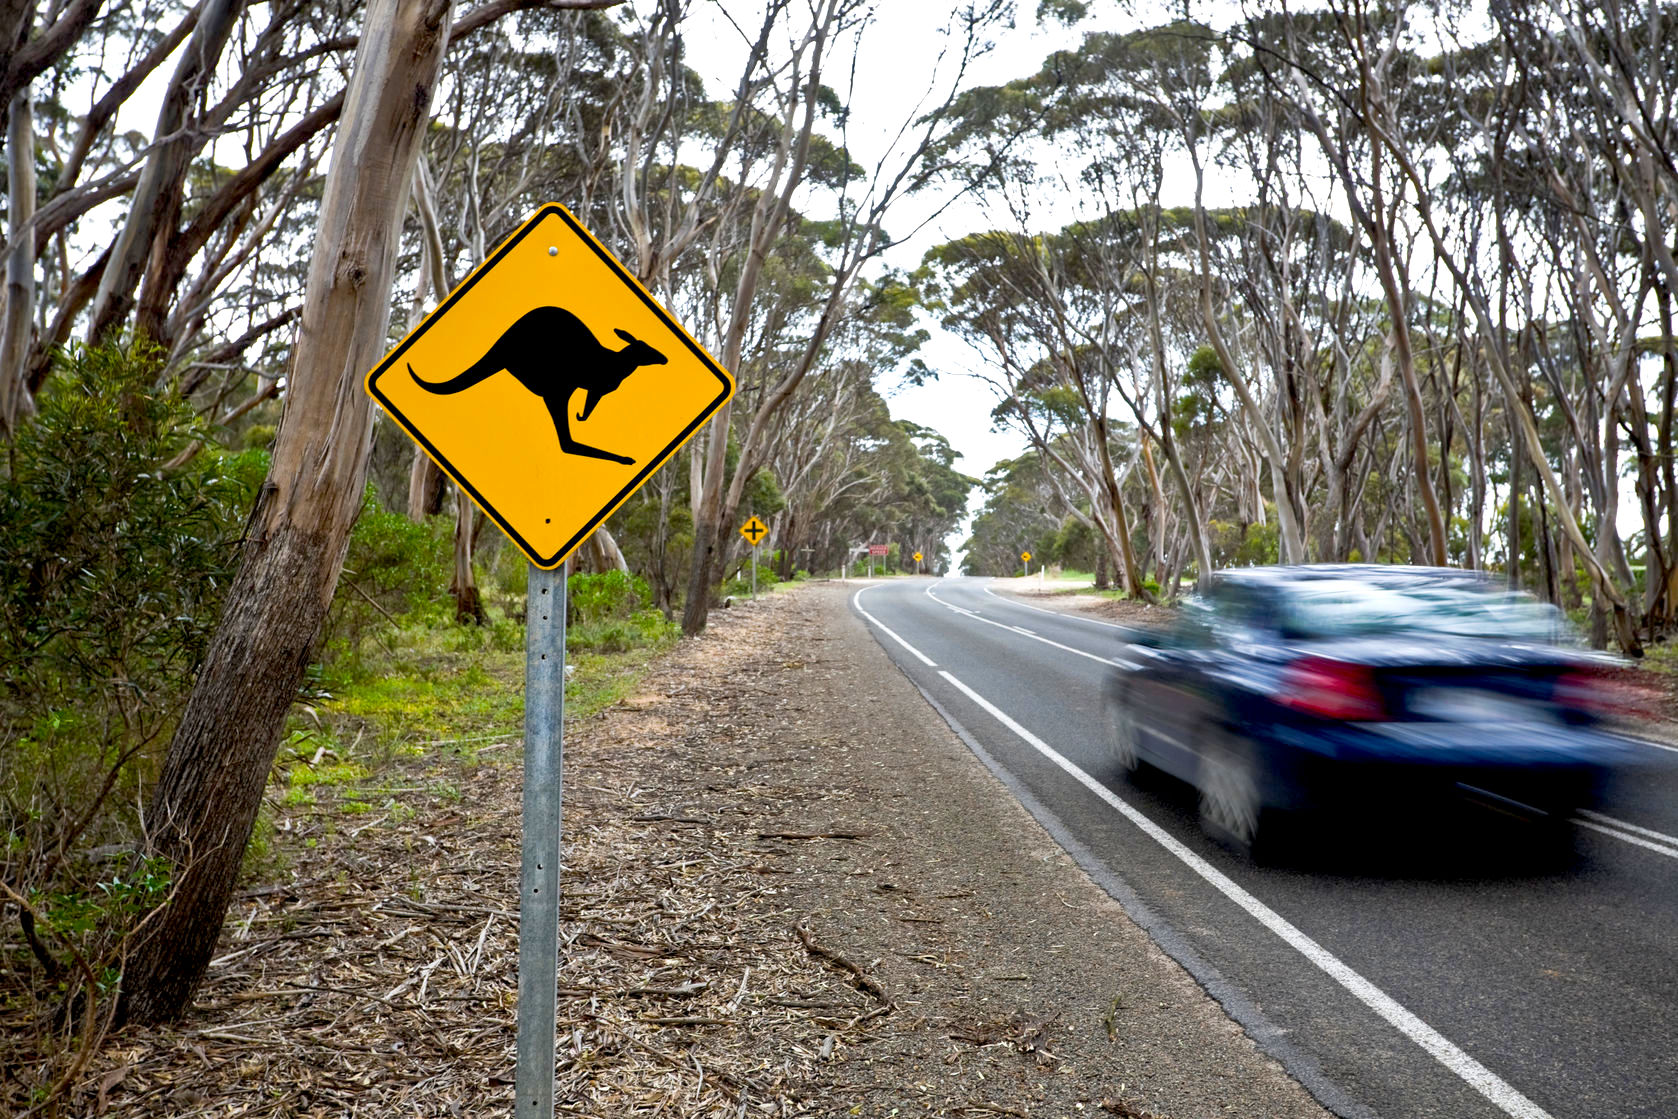 volvo u0027s driverless car engineers face a kangaroo conundrum